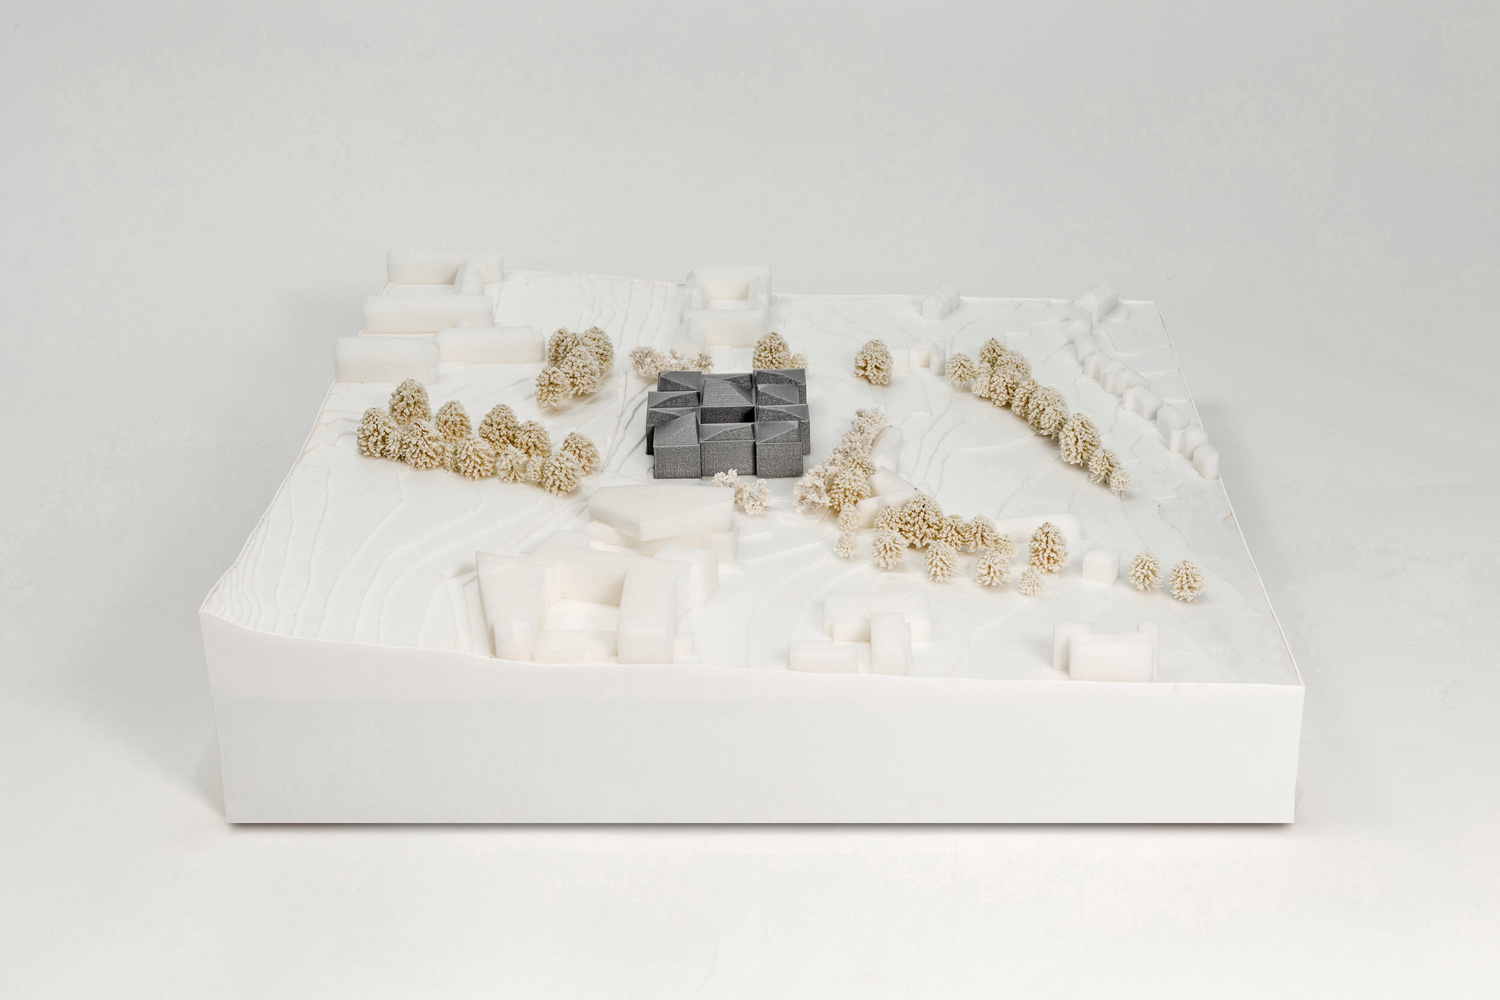 Concept Model II FaulknerBrowns Architects}